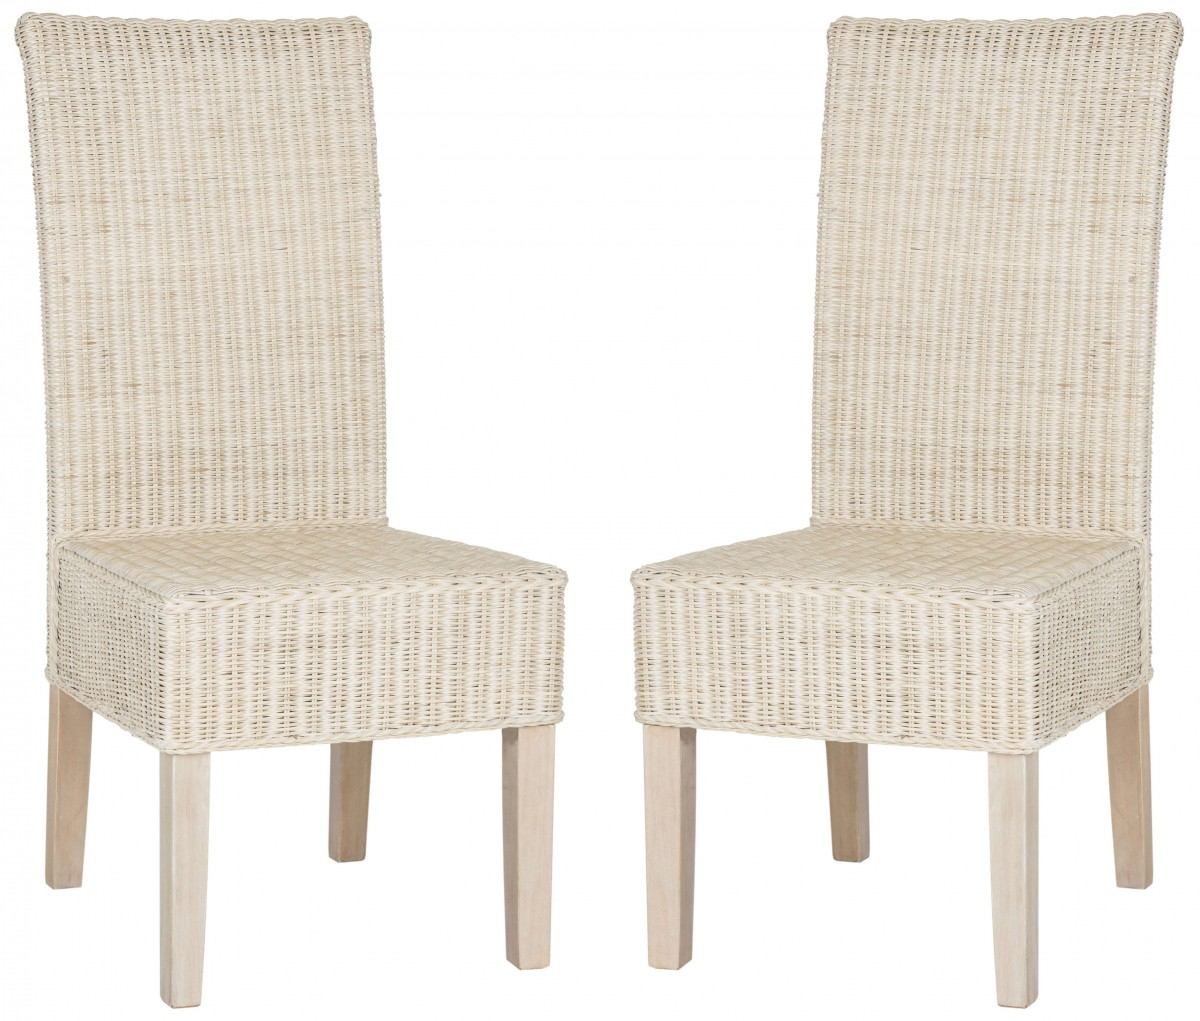 White Wicker Dining Chairs: Safavieh Arjun White Washed Wicker Dining Chair